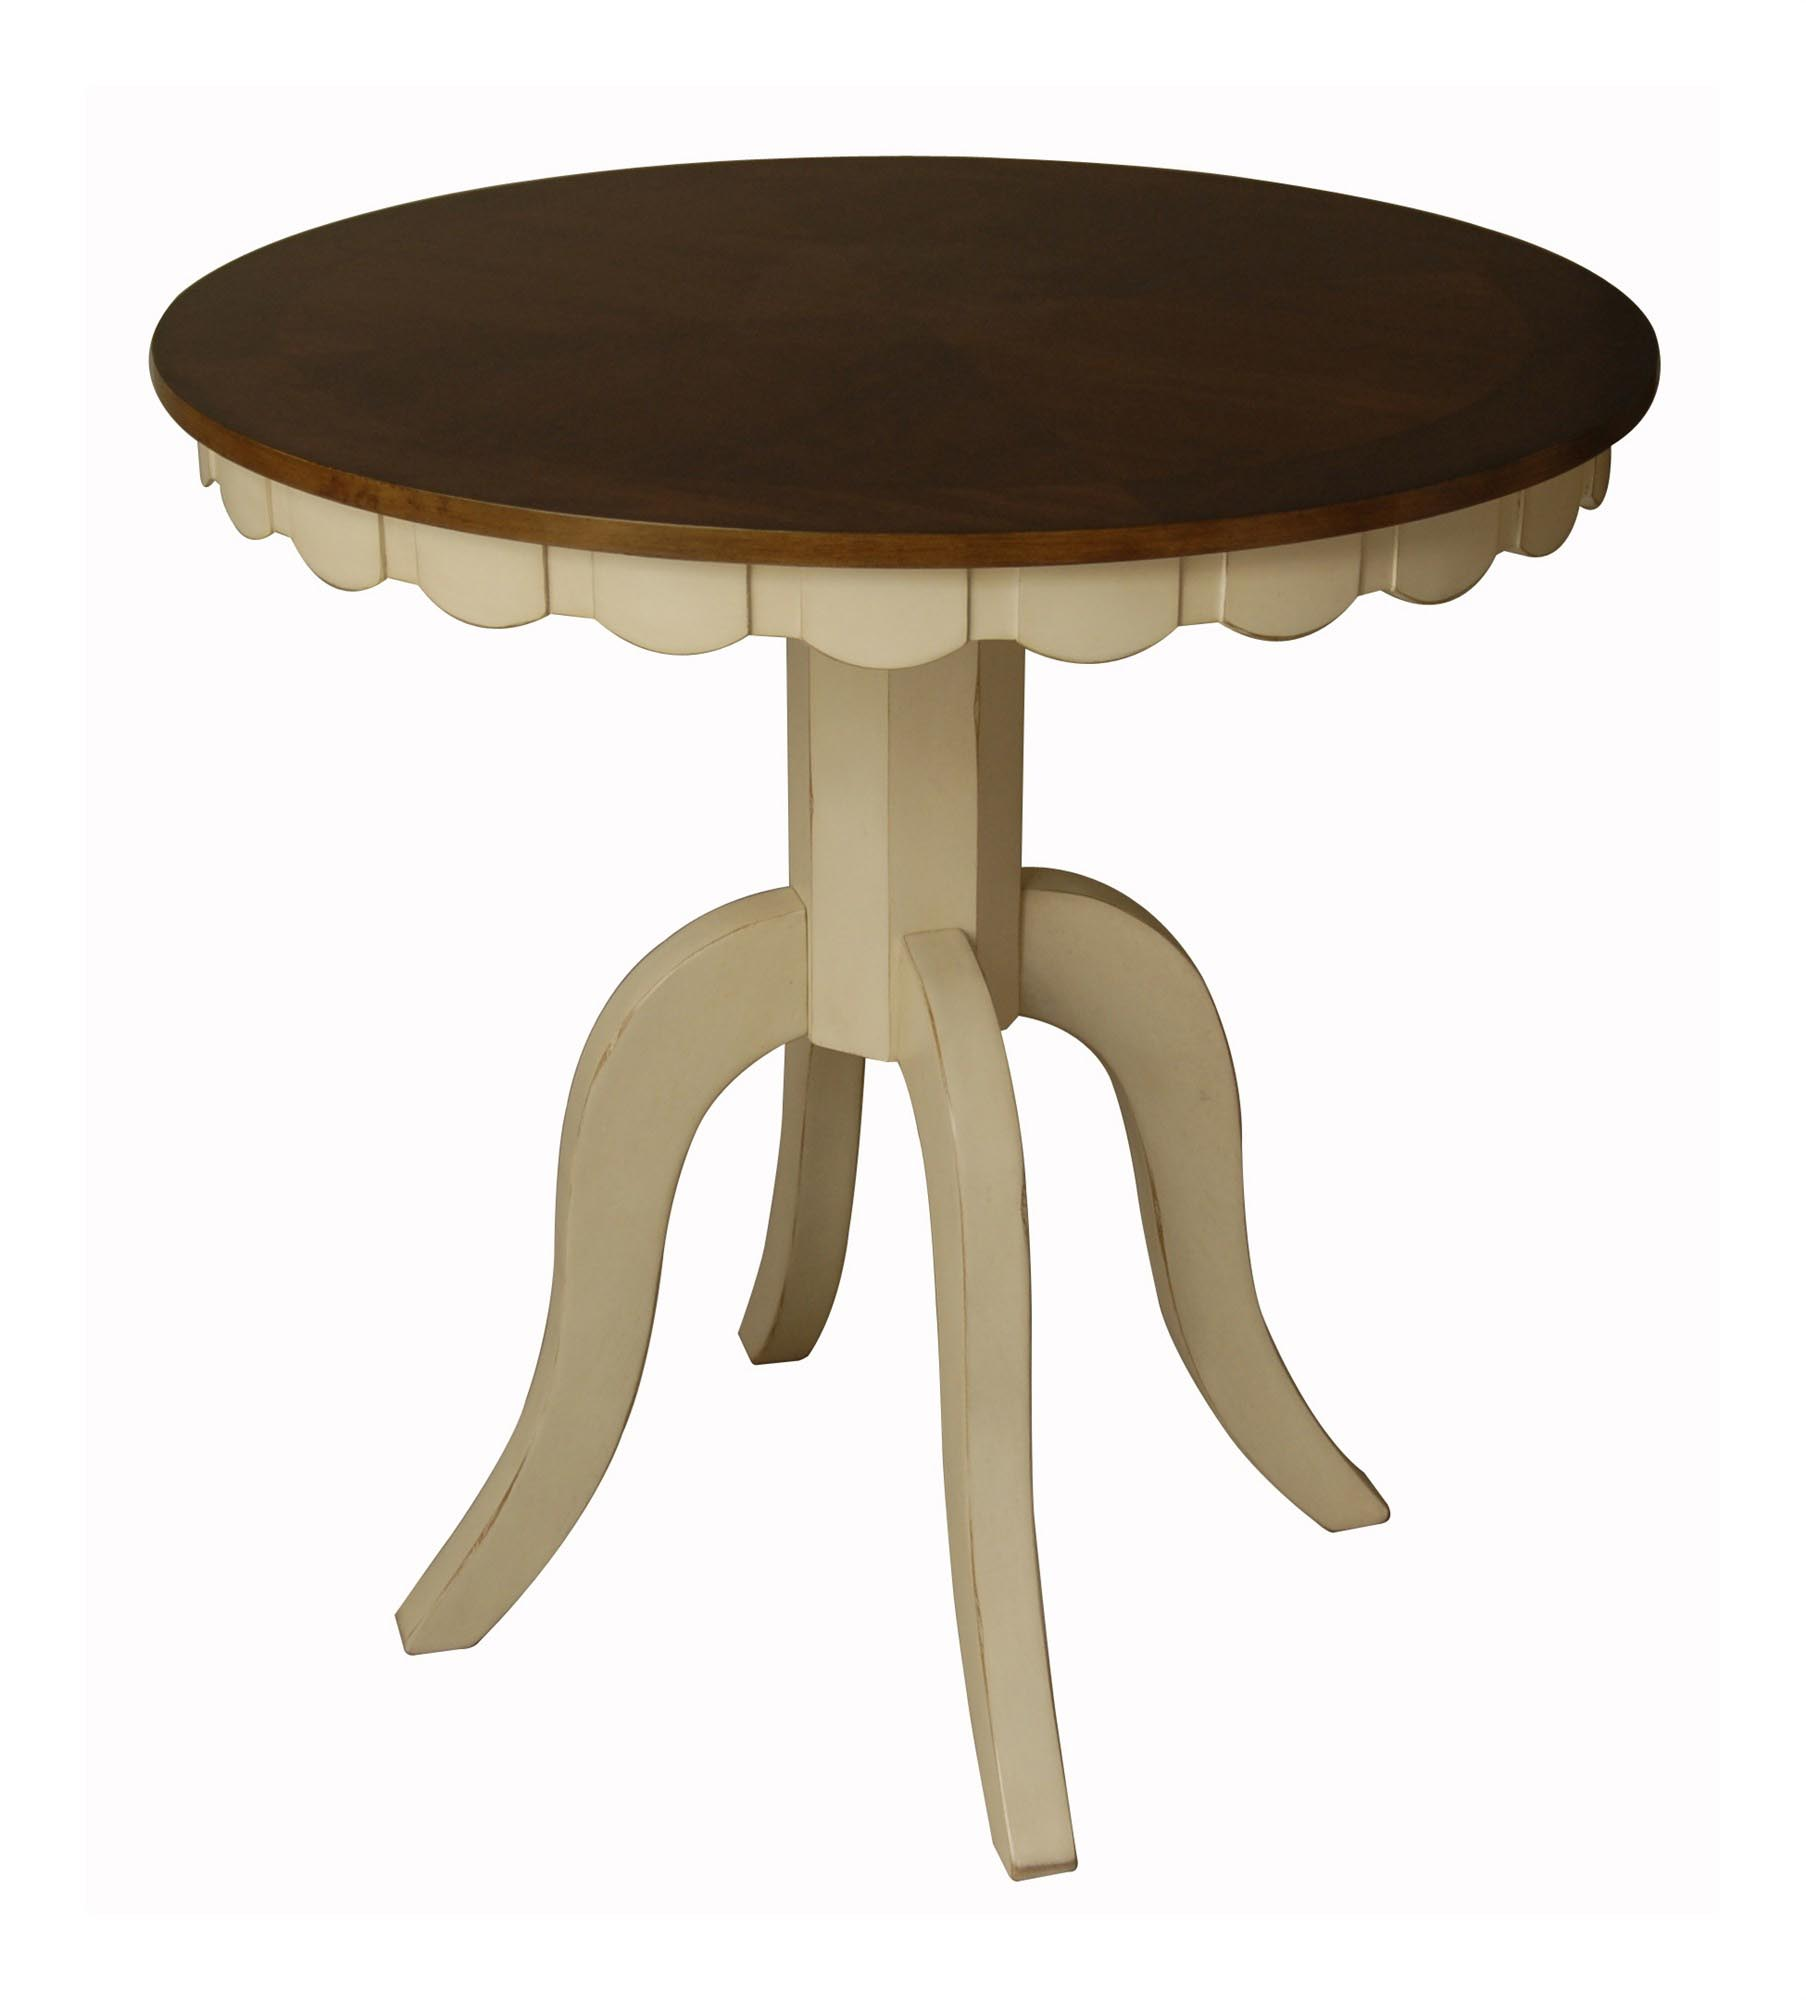 Round Glass Pedestal Coffee Table: Coffee Table Design Ideas